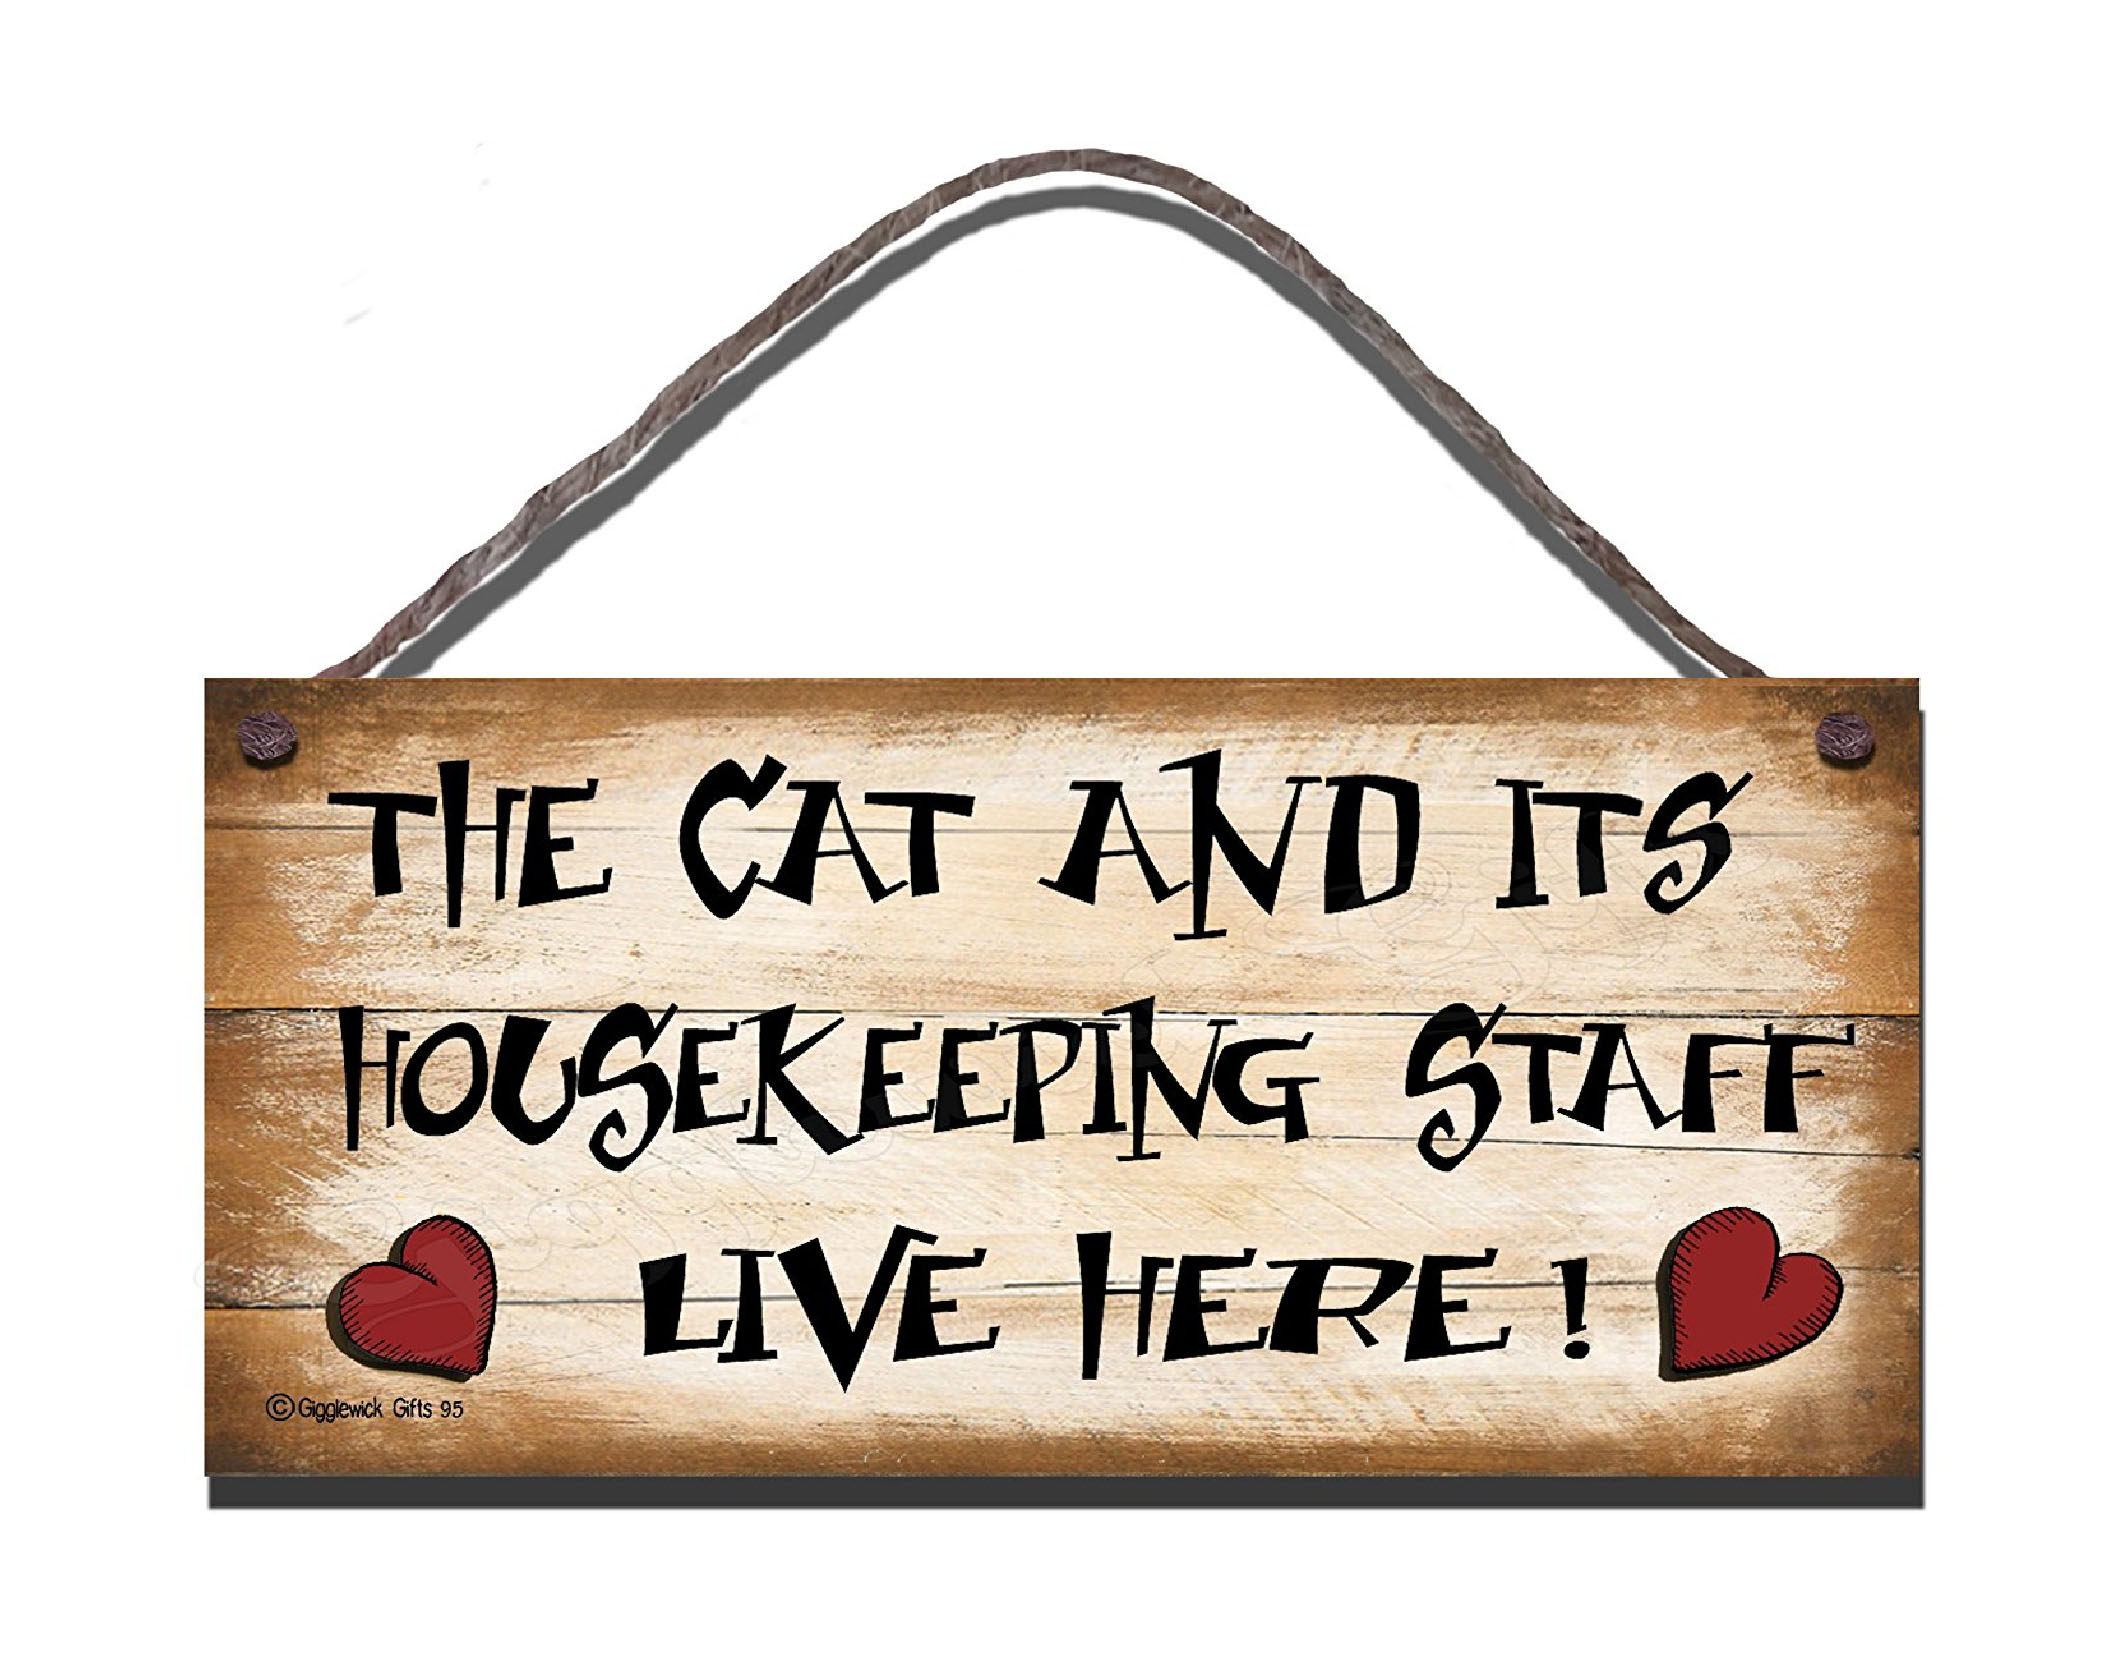 Cats Staff S95 Wooden Sign S95 197 Gigglewick Gifts Funny